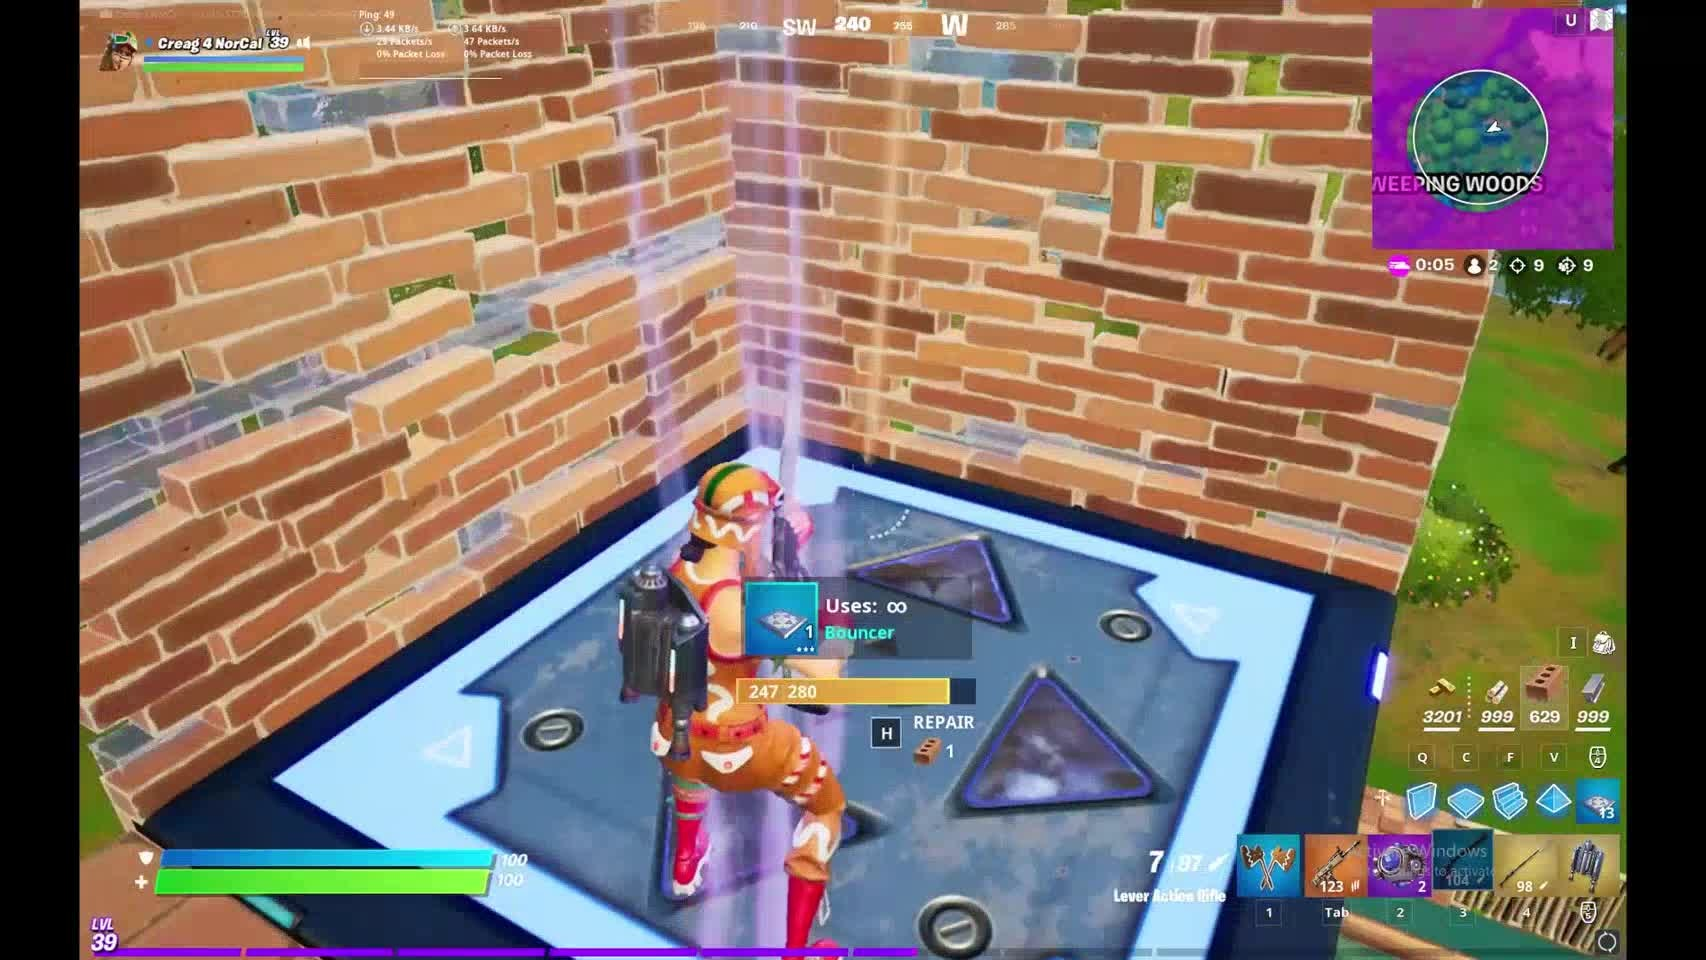 Fortnite: General - The new snipers are fun but only hitmarkers video cover image 1